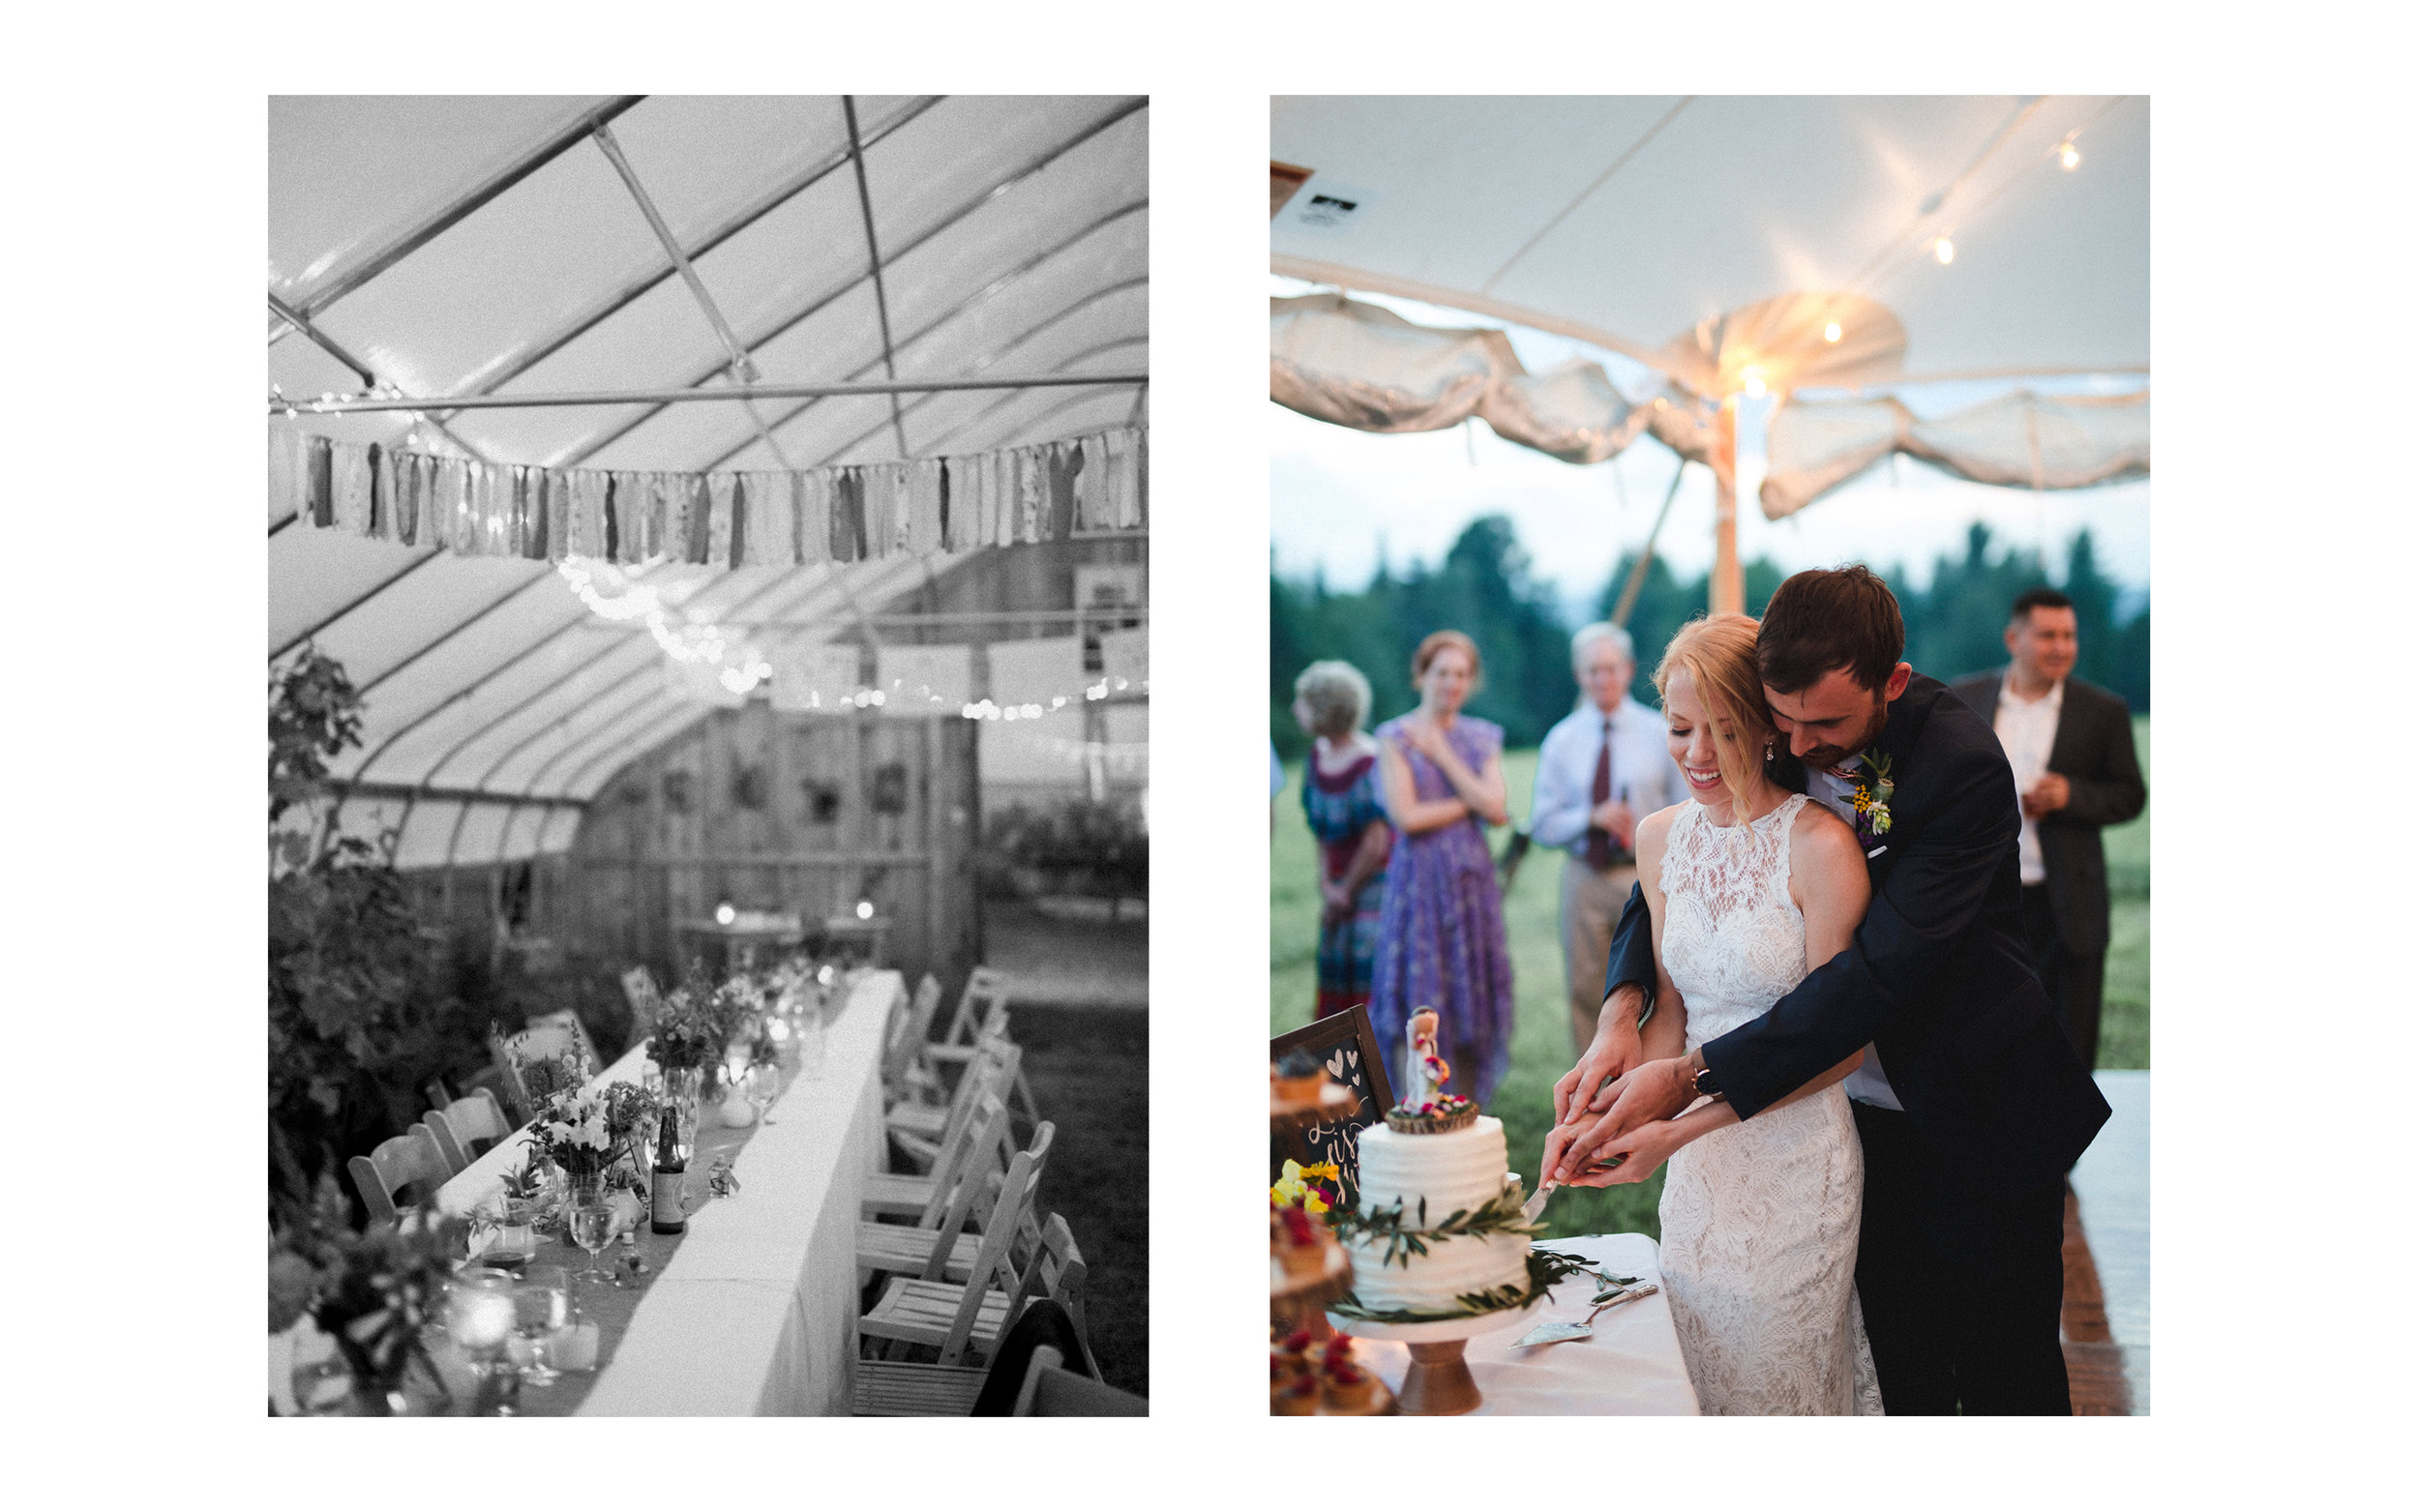 Stowe VT Farm Wedding Fine Art Wedding Photographer_Meg Haley Photographs_069.jpg